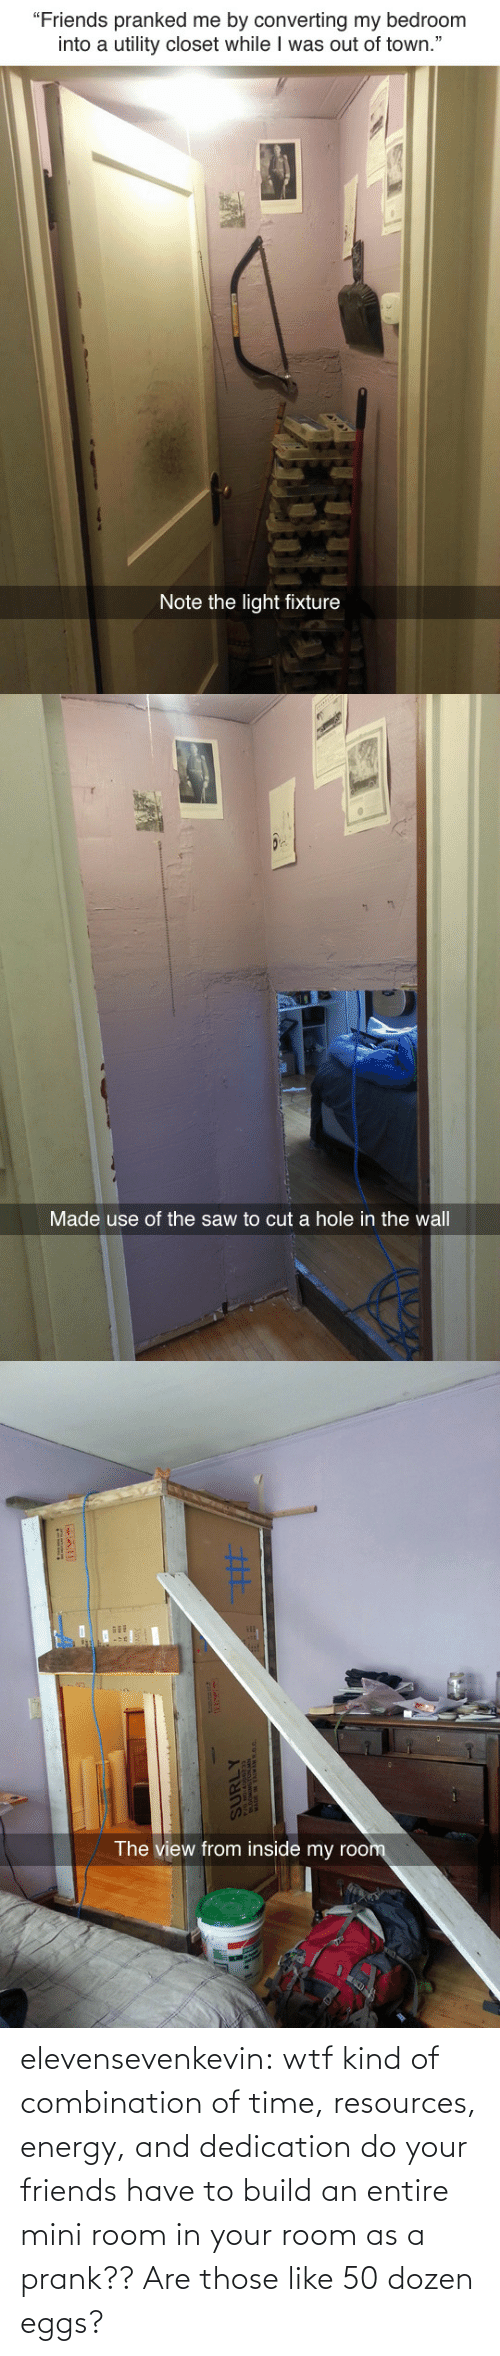 """eggs: """"Friends pranked me by converting my bedroom  into a utility closet while I was out of town.""""  Note the light fixture   Made use of the saw to cut a hole in the wall   The view from inside my roo elevensevenkevin:  wtf kind of combination of time, resources, energy, and dedication do your friends have to build an entire mini room in your room as a prank??    Are those like 50 dozen eggs?"""